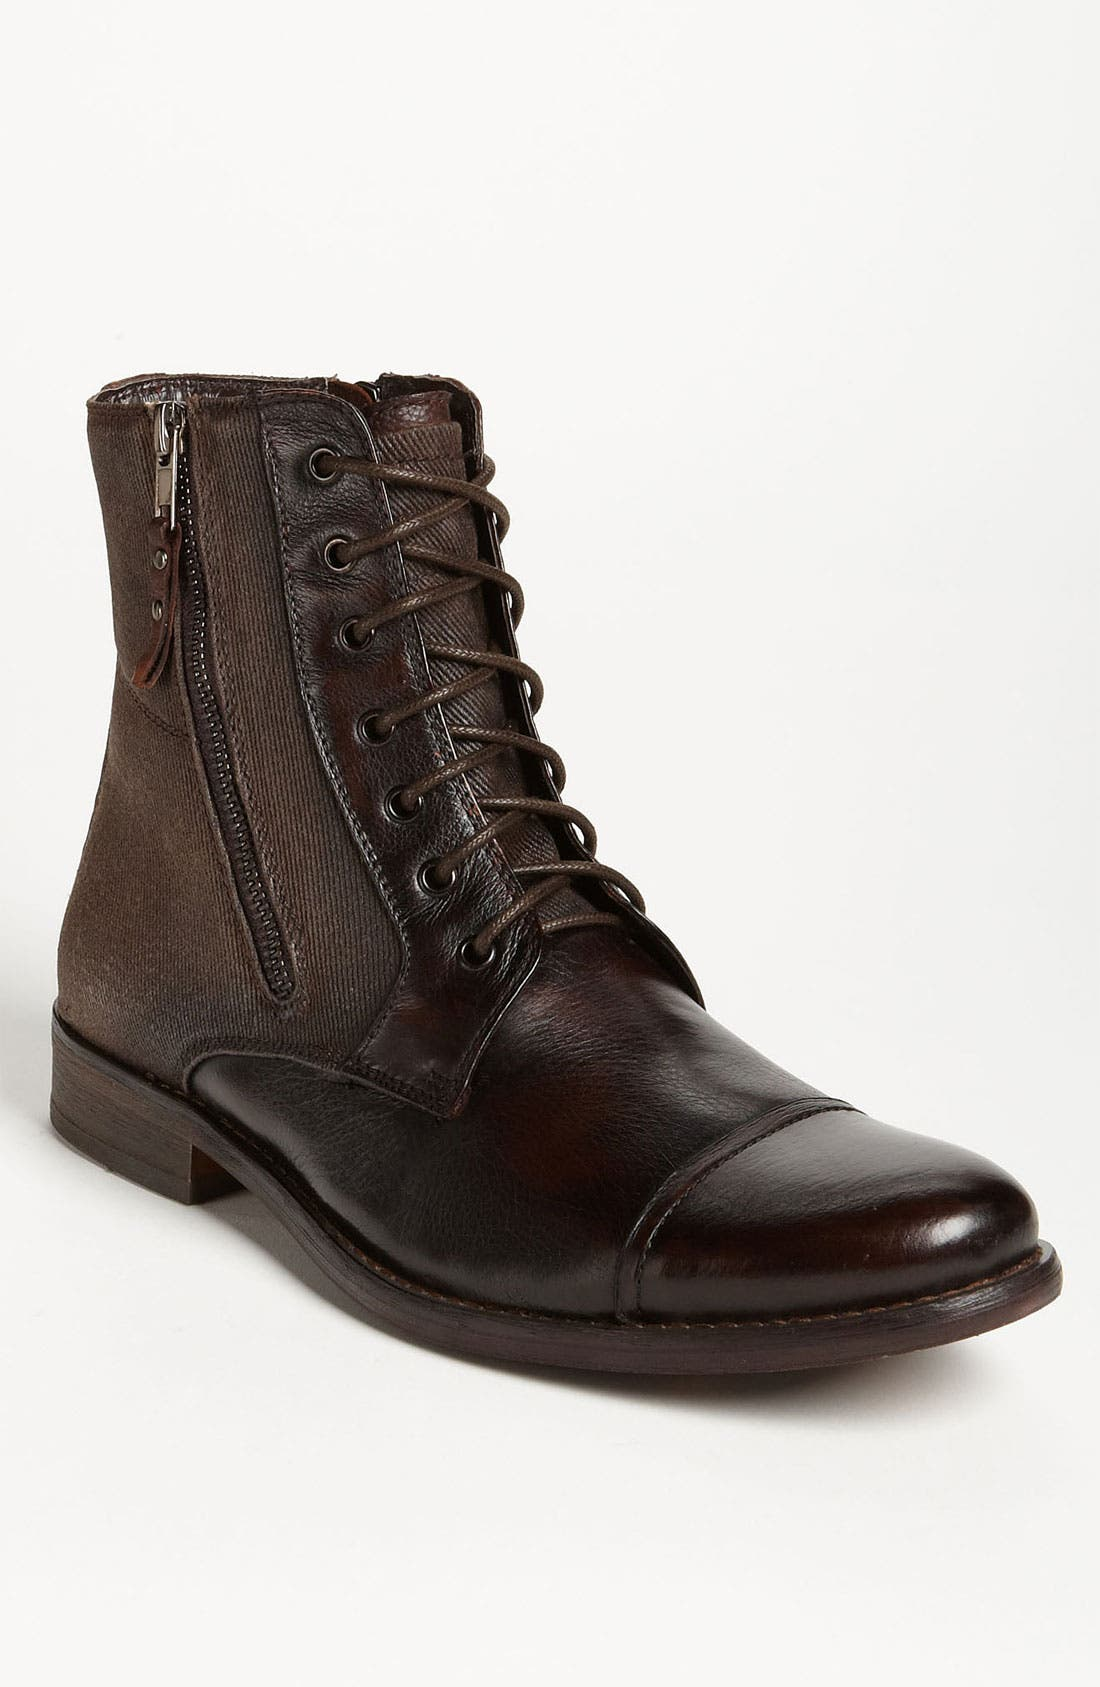 Alternate Image 1 Selected - Kenneth Cole Reaction 'Hit Men' Boot